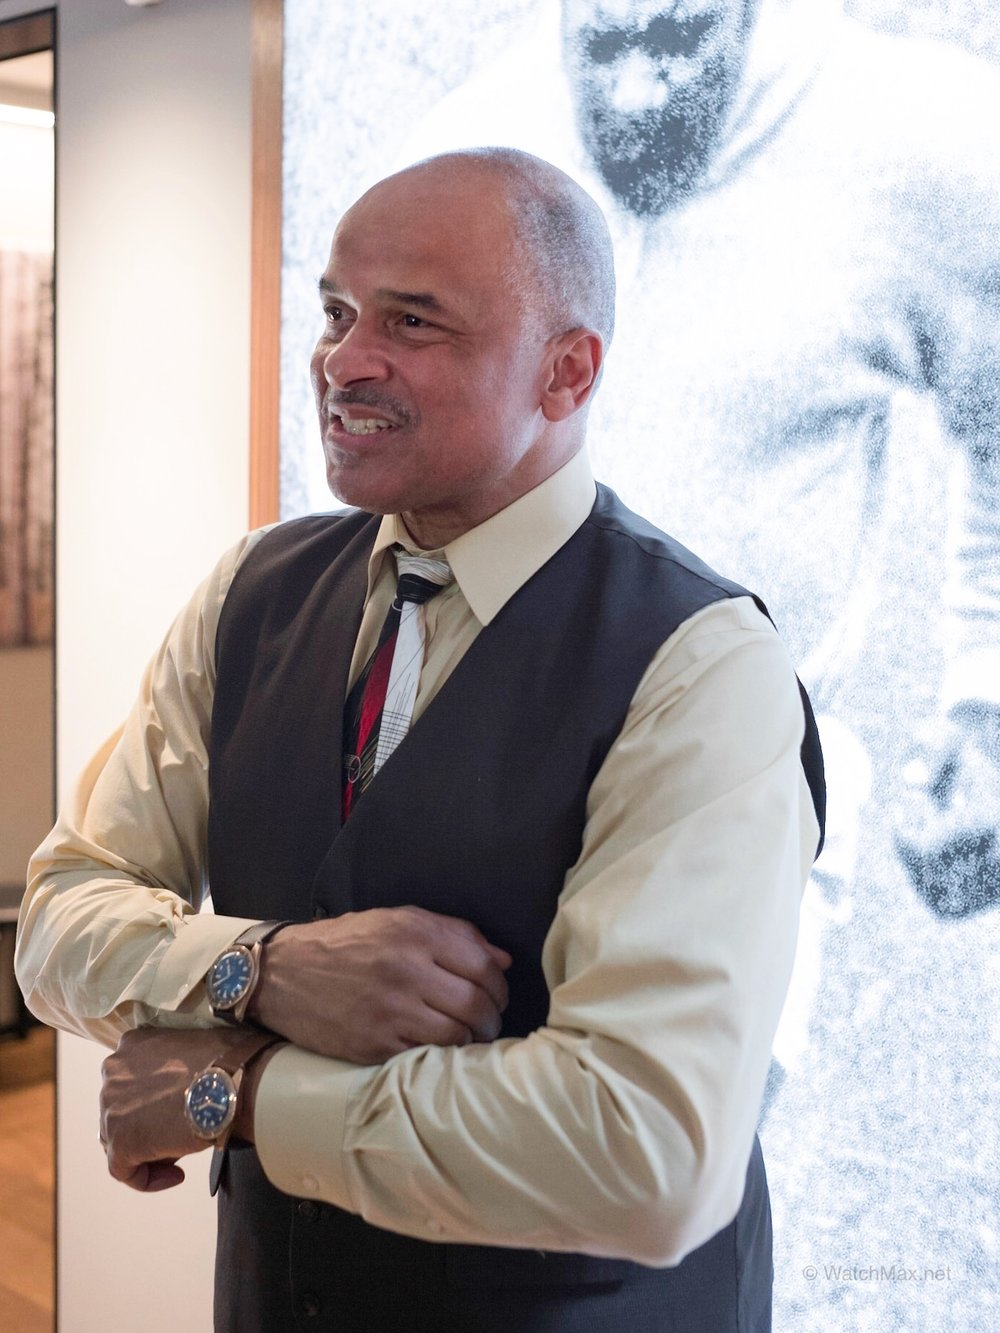 Carl Brashear's son: Philip, posing wearing both limited edition Oris diver bronze with a photo of the Master Diver in the background.